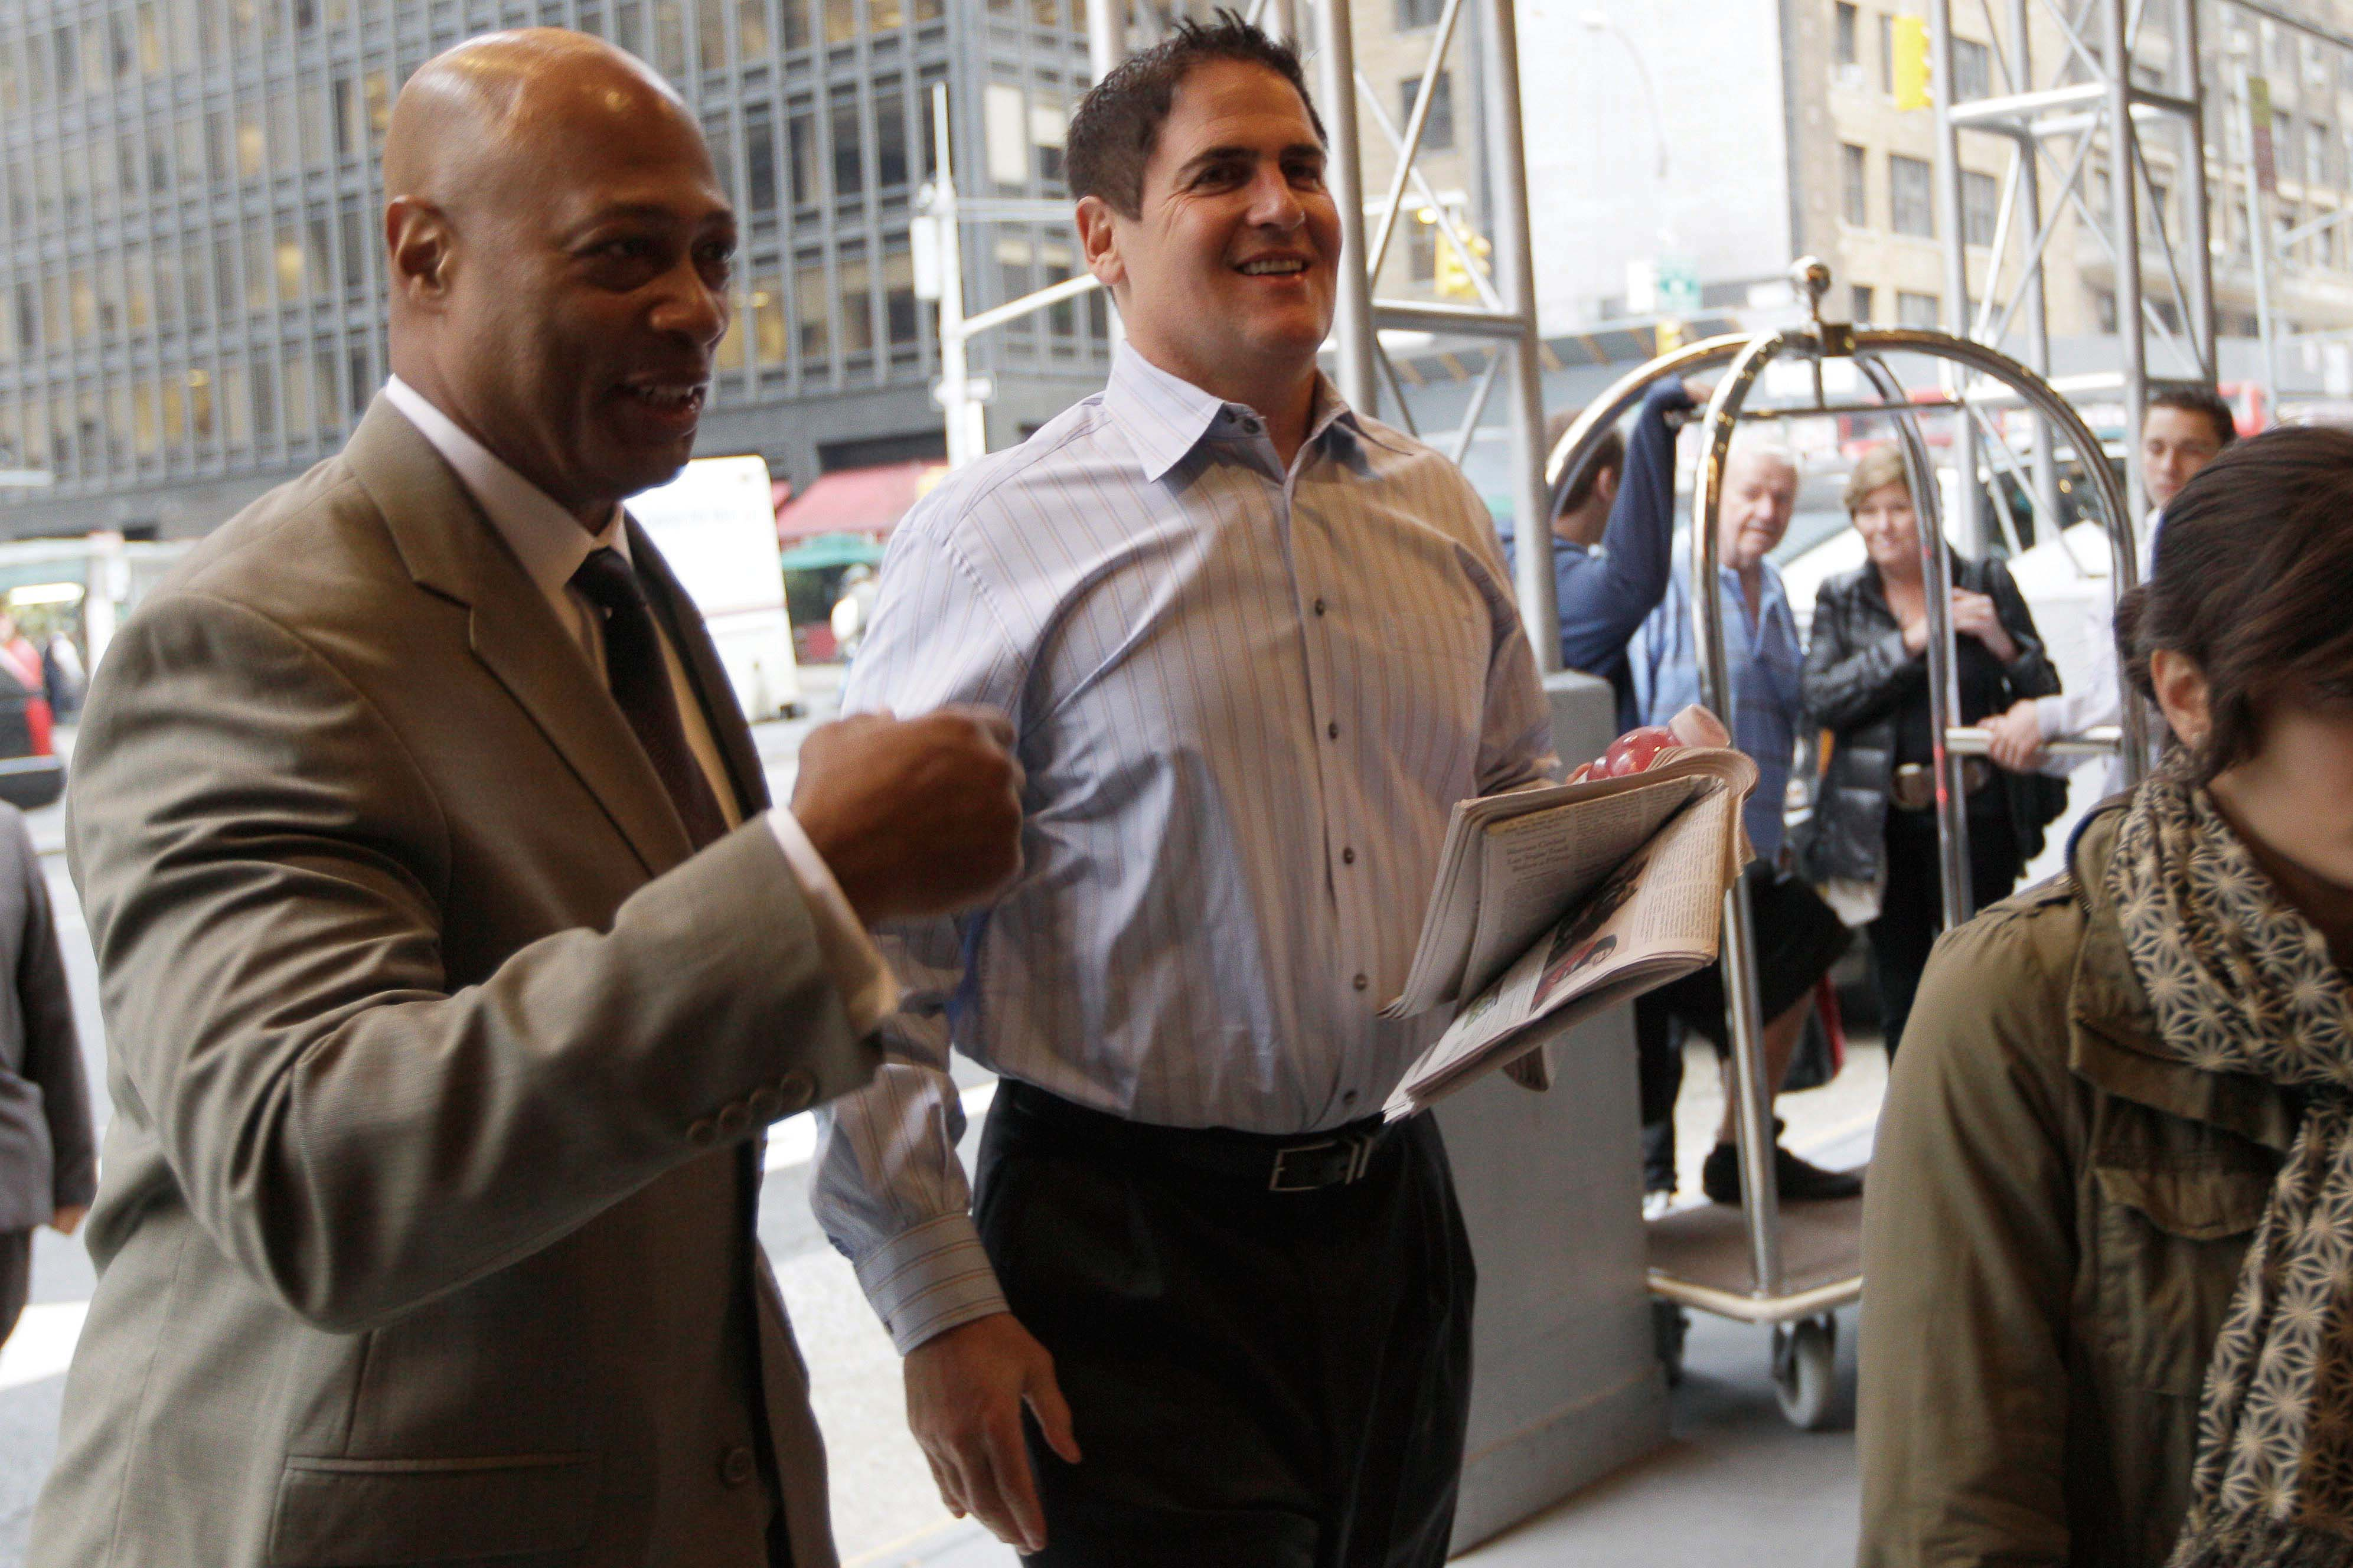 Dallas Mavericks owner Mark Cuban, right, arrives for labor talks between the NBA and players' association, Tuesday, Oct. 18, 2011 in New York.  (Asso...